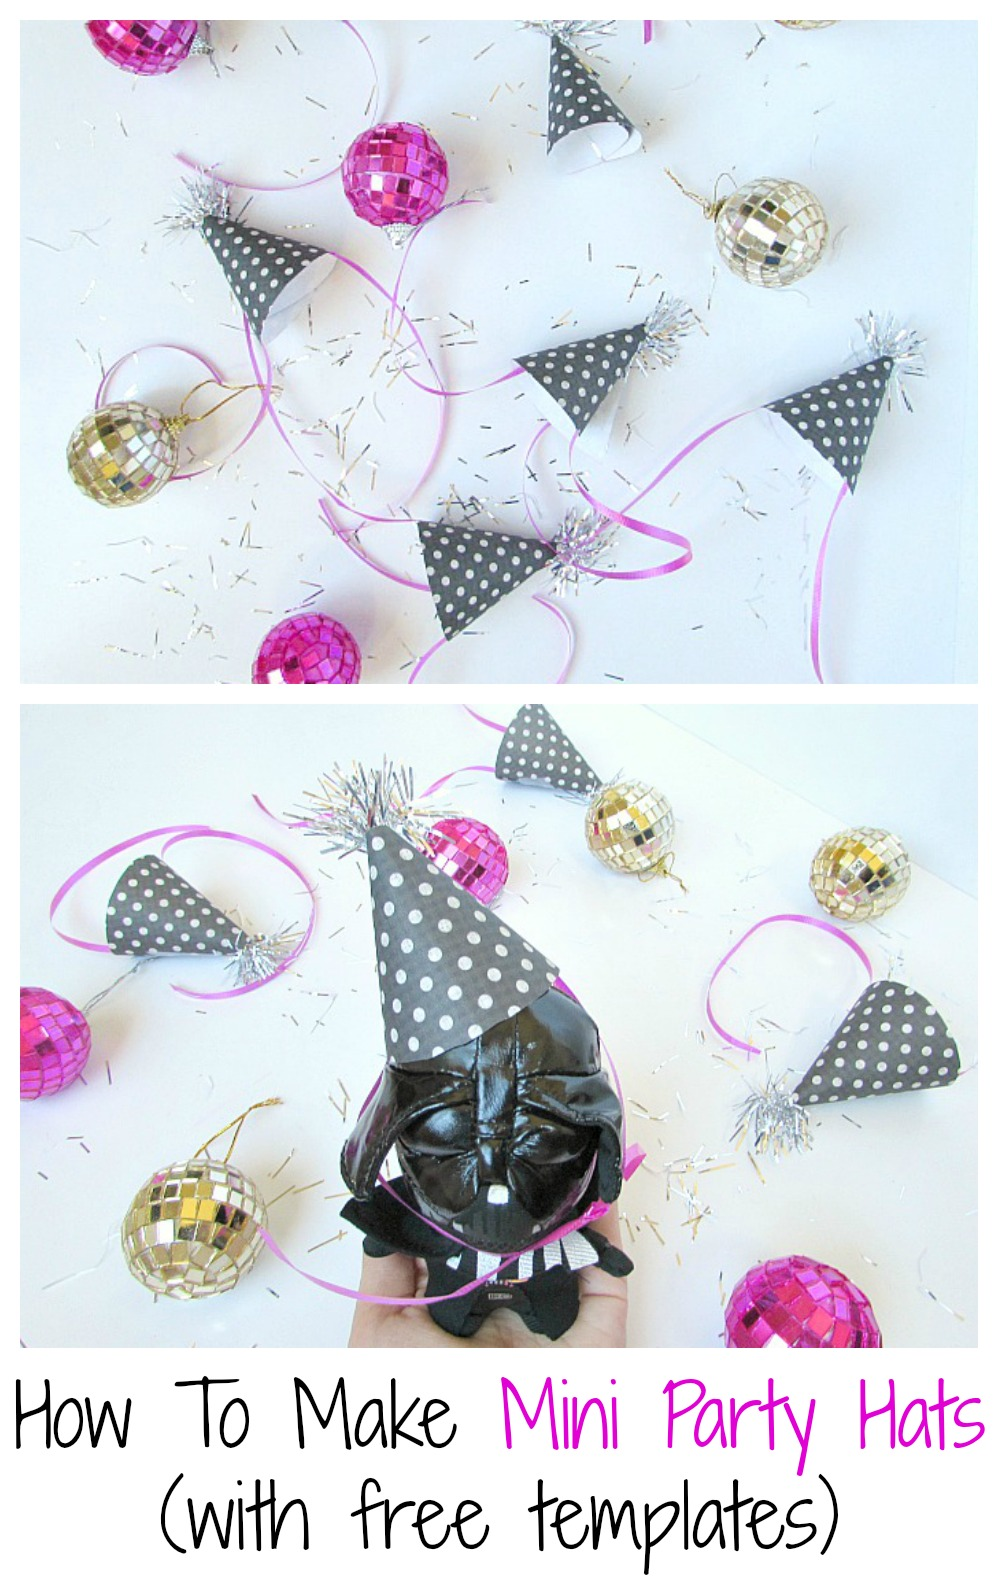 How To Make Mini Party Hats